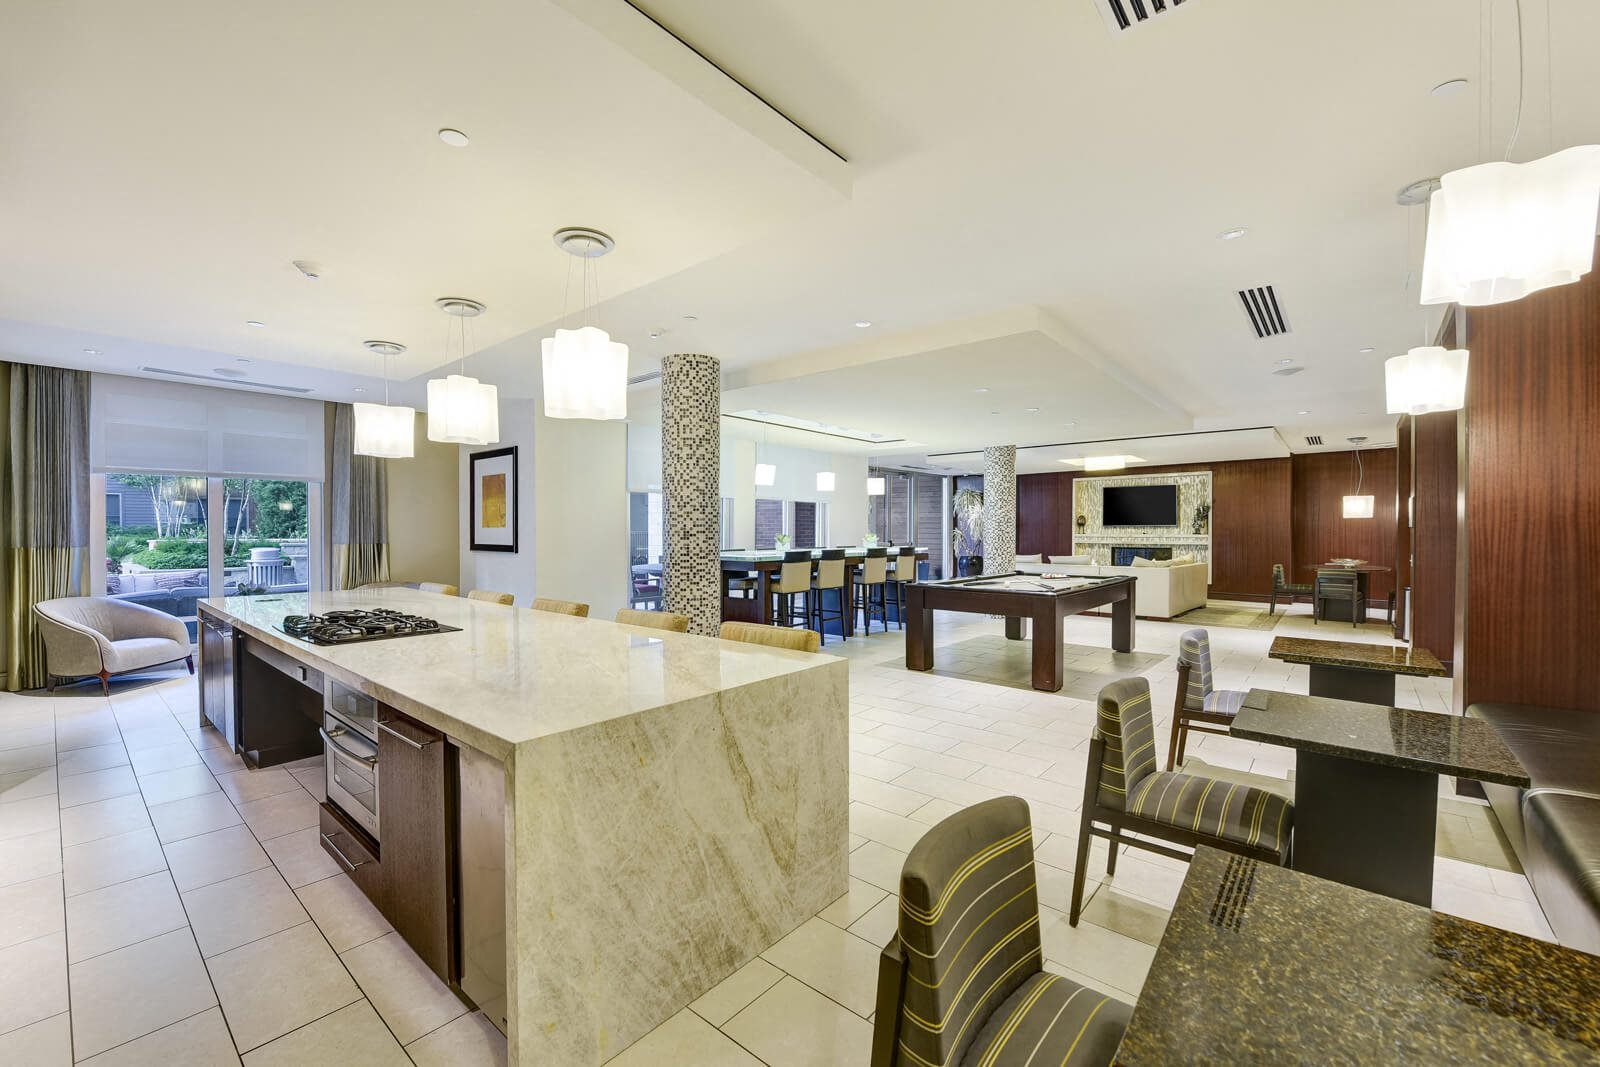 Gourmet Kitchen In Club Suite at Windsor at Cambridge Park, Cambridge, 02140